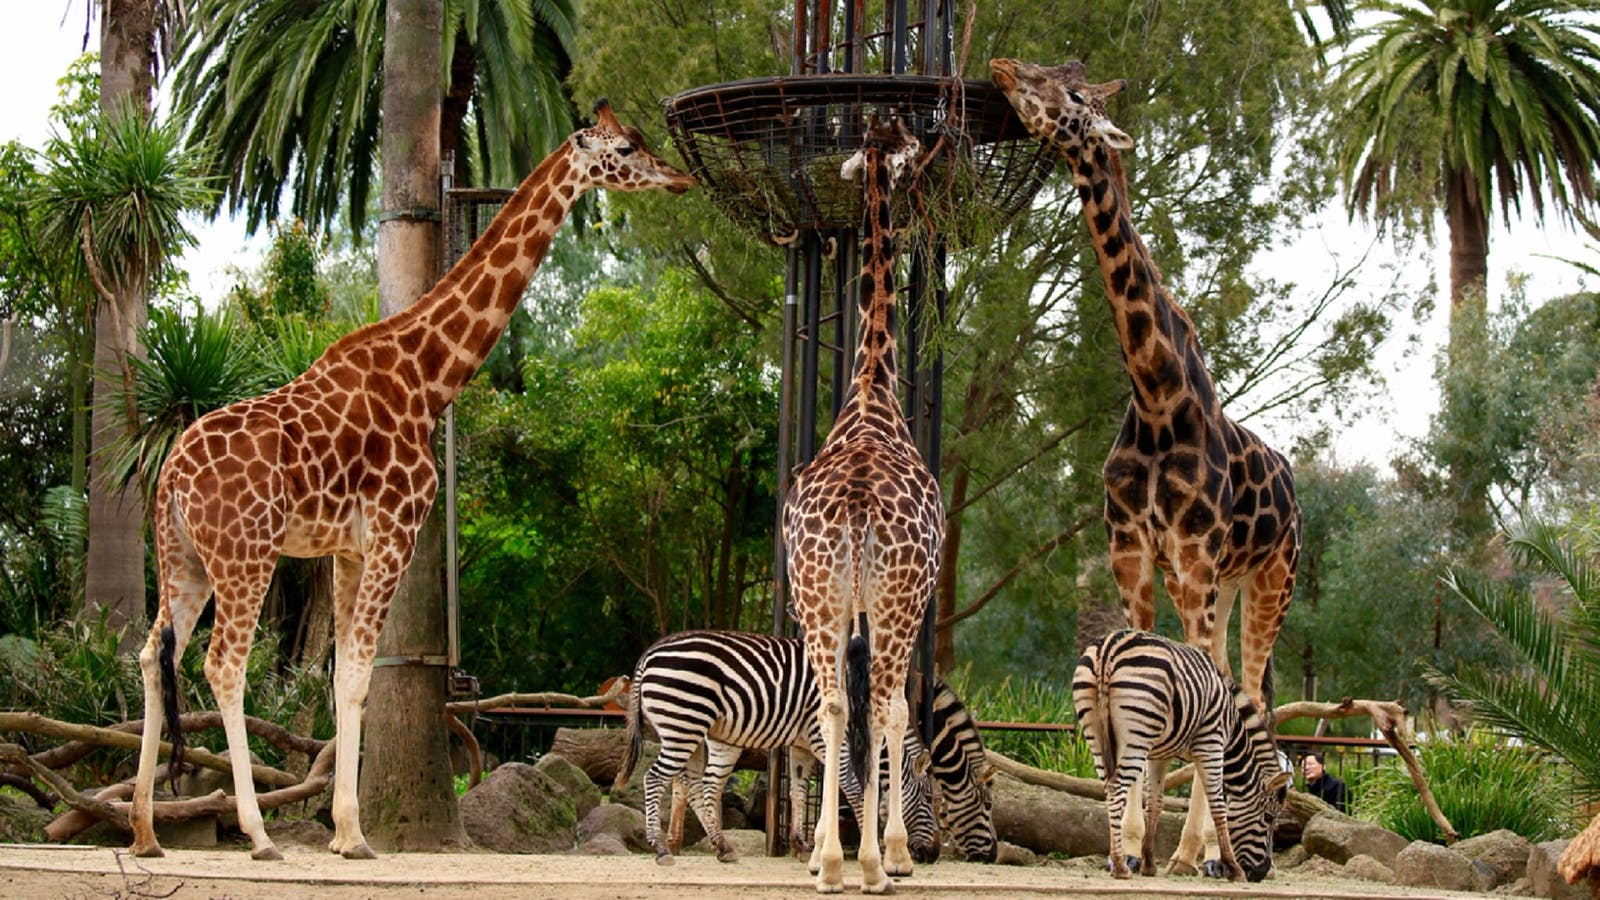 Giraffe viewing platform